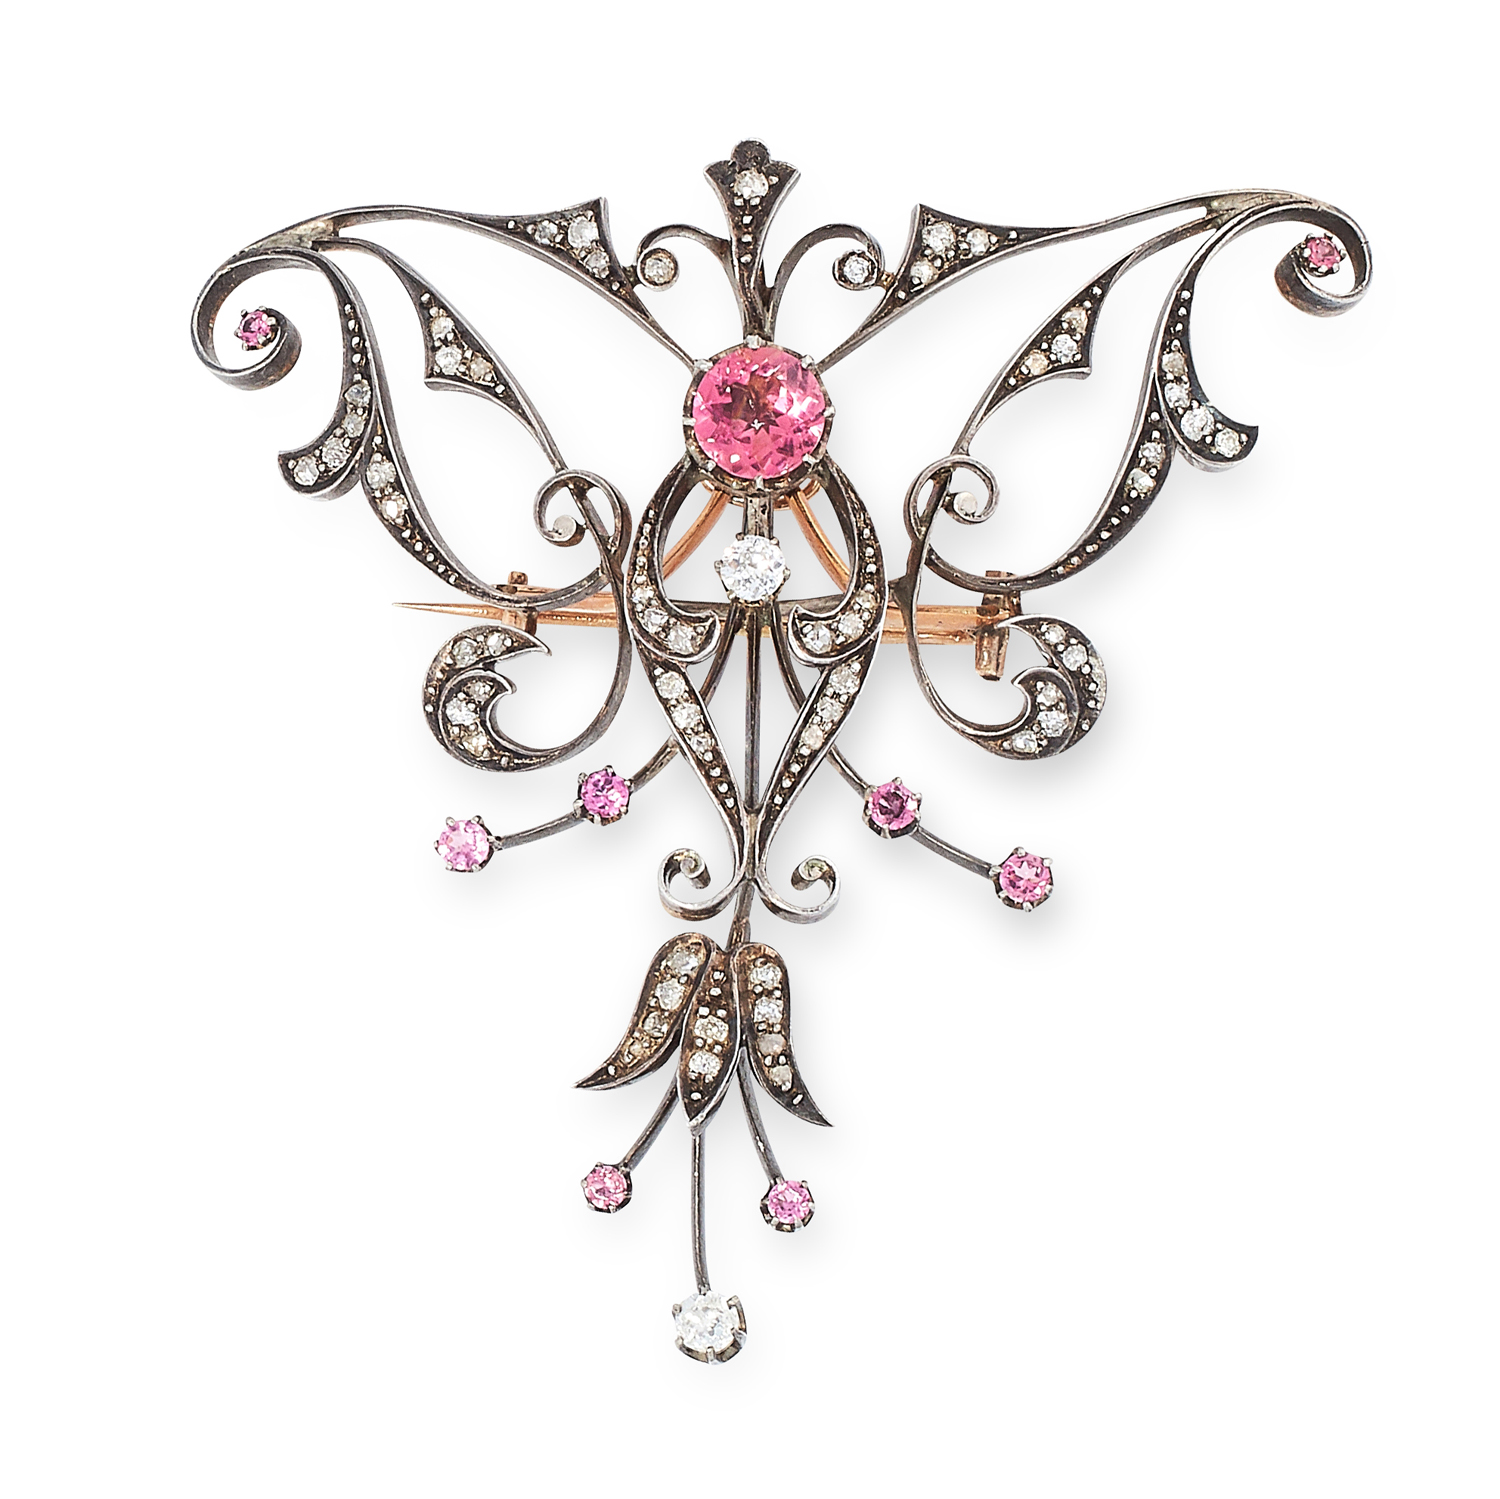 AN ANTIQUE PINK TOURMALINE AND DIAMOND BROOCH, CIRCA 1900 in yellow gold and silver, comprising